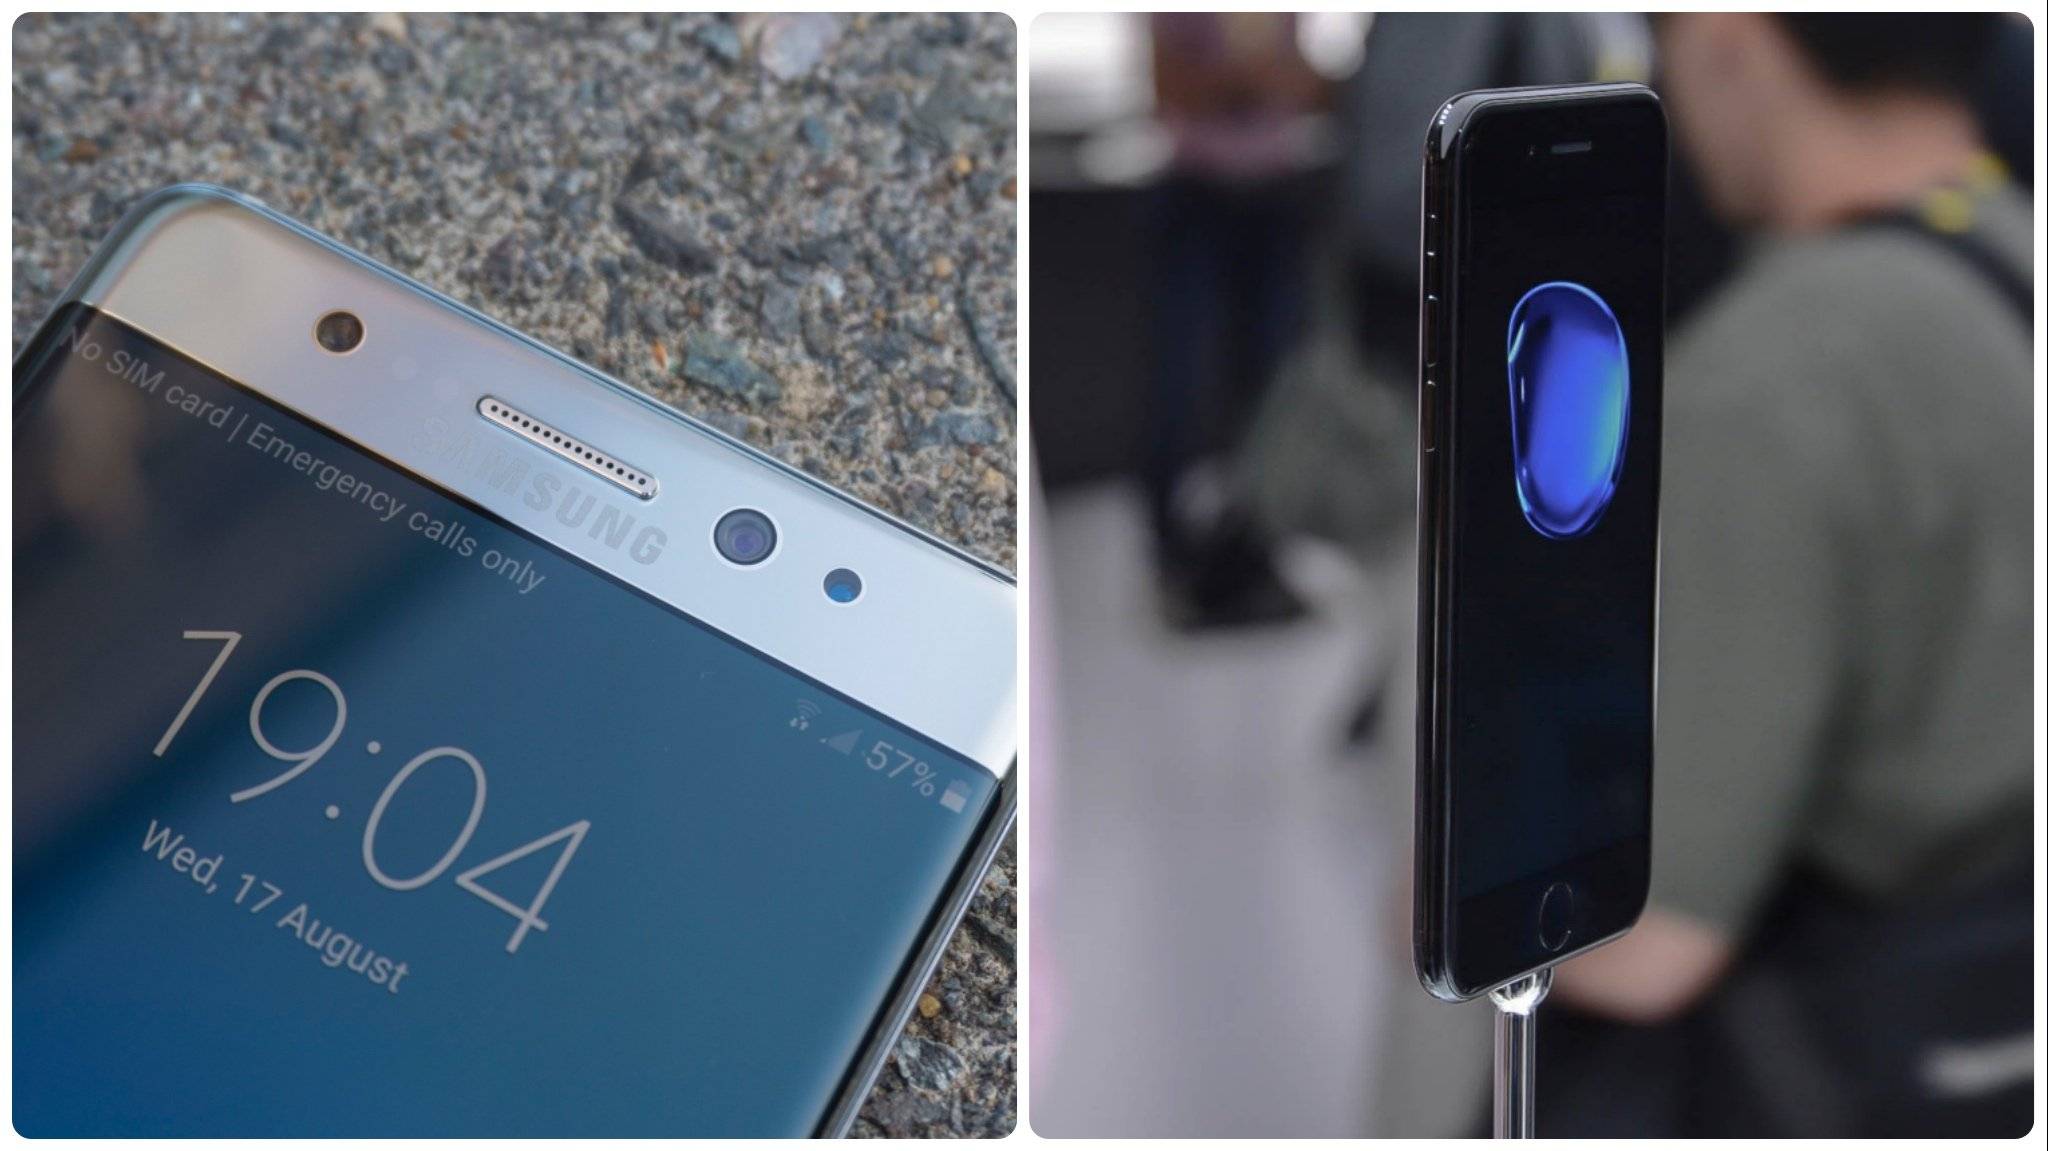 iPhone 7 Plus vs Samsung Galaxy Note 7: Which one is the king of the phablet?